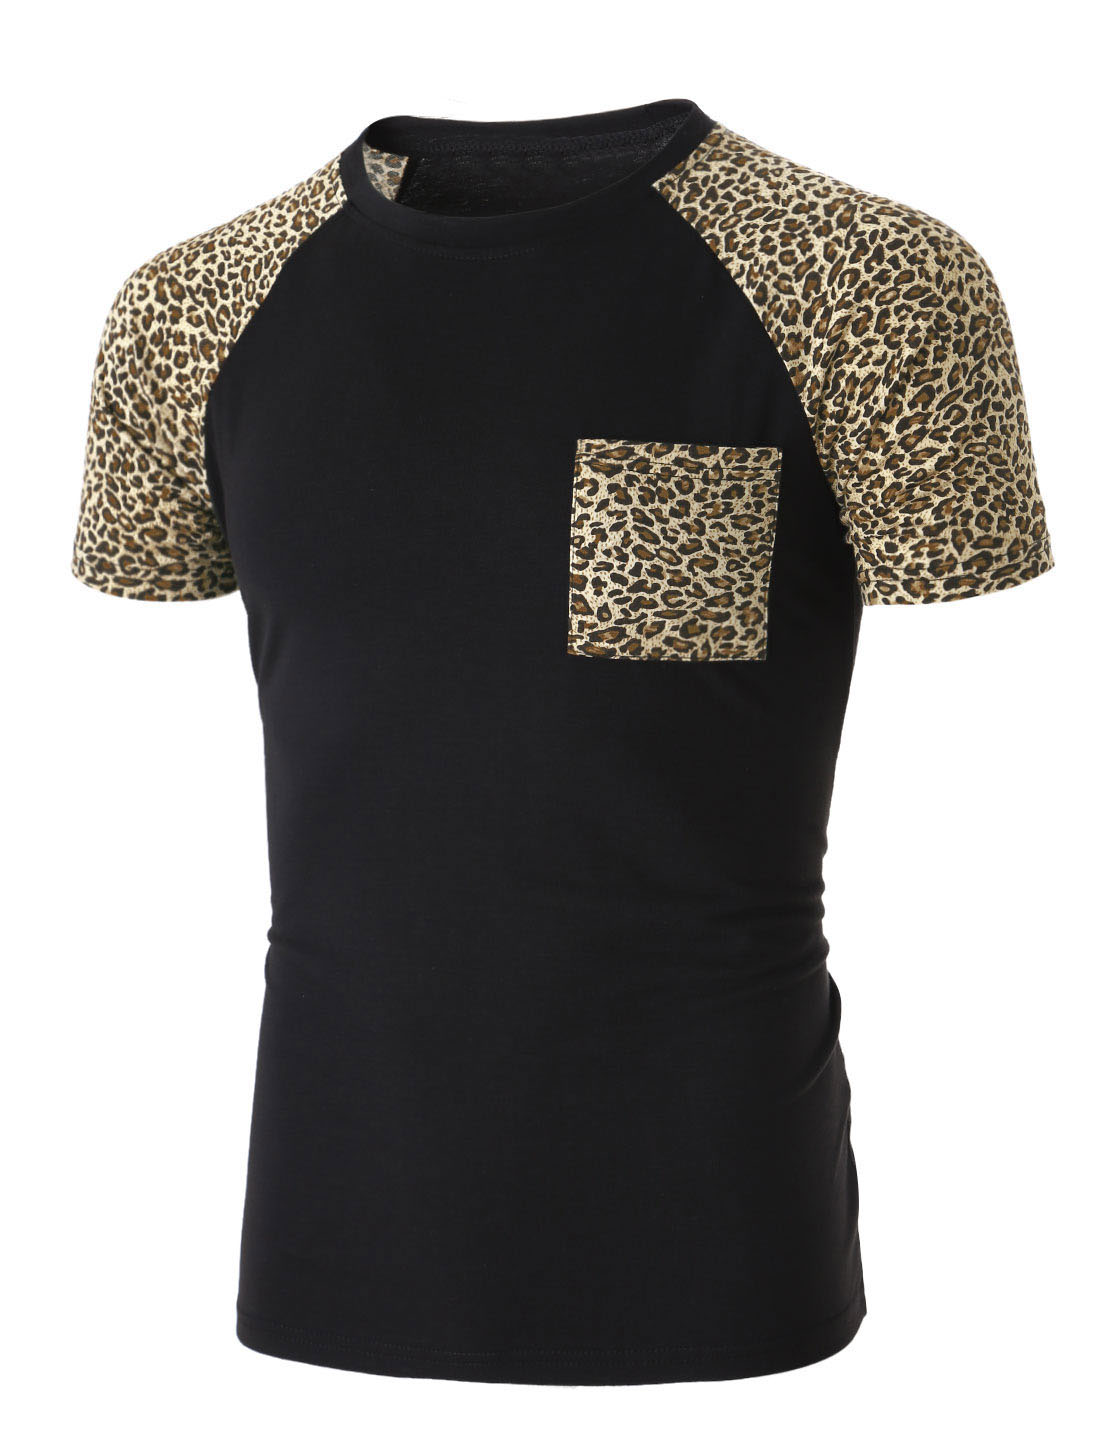 Men Round Neck Raglan Sleeves Leopard Prints Tee Black L